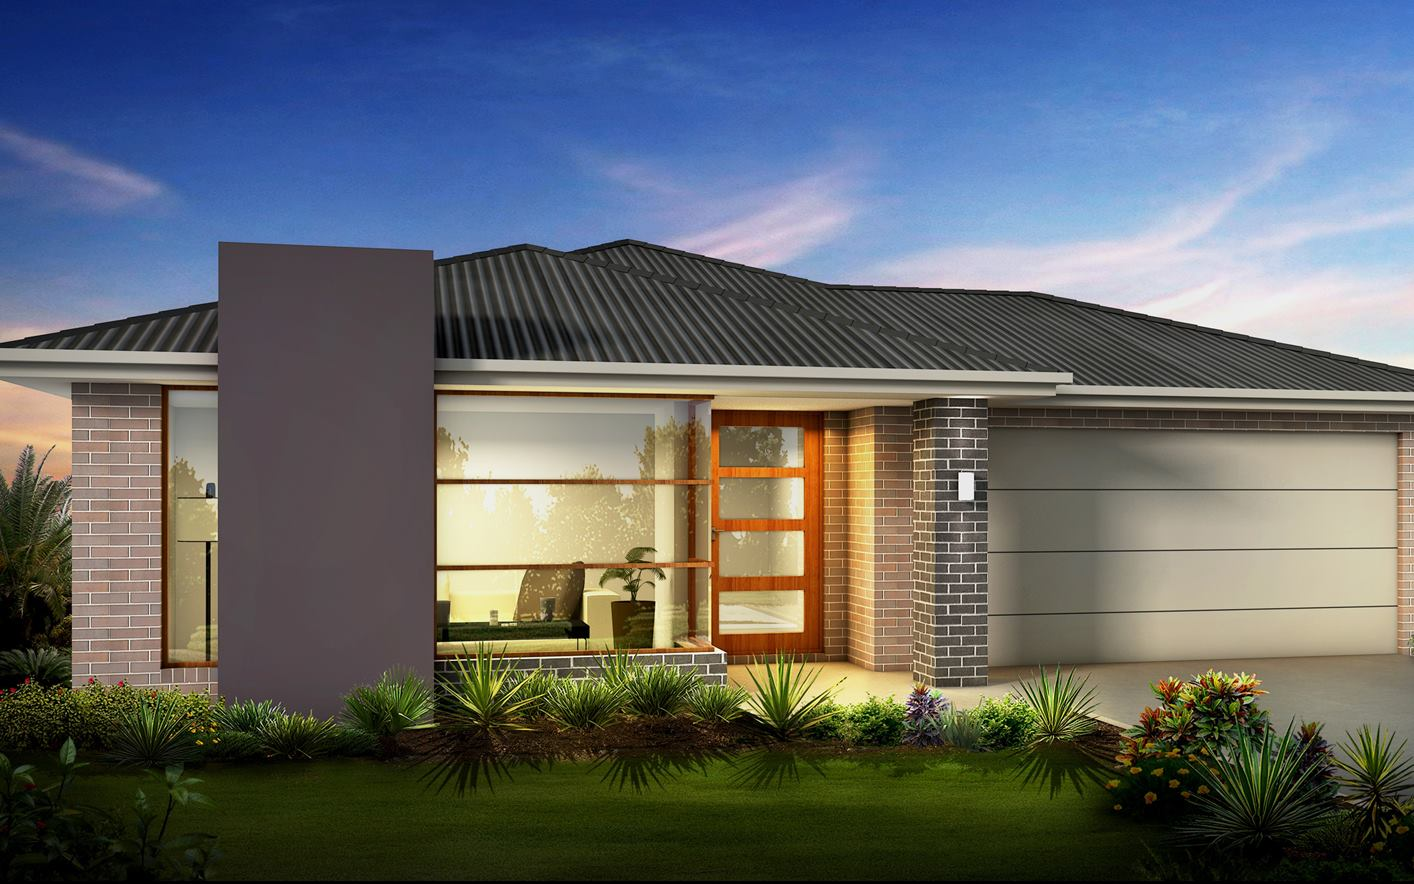 Metford Split Level Home Design with Trend Facade